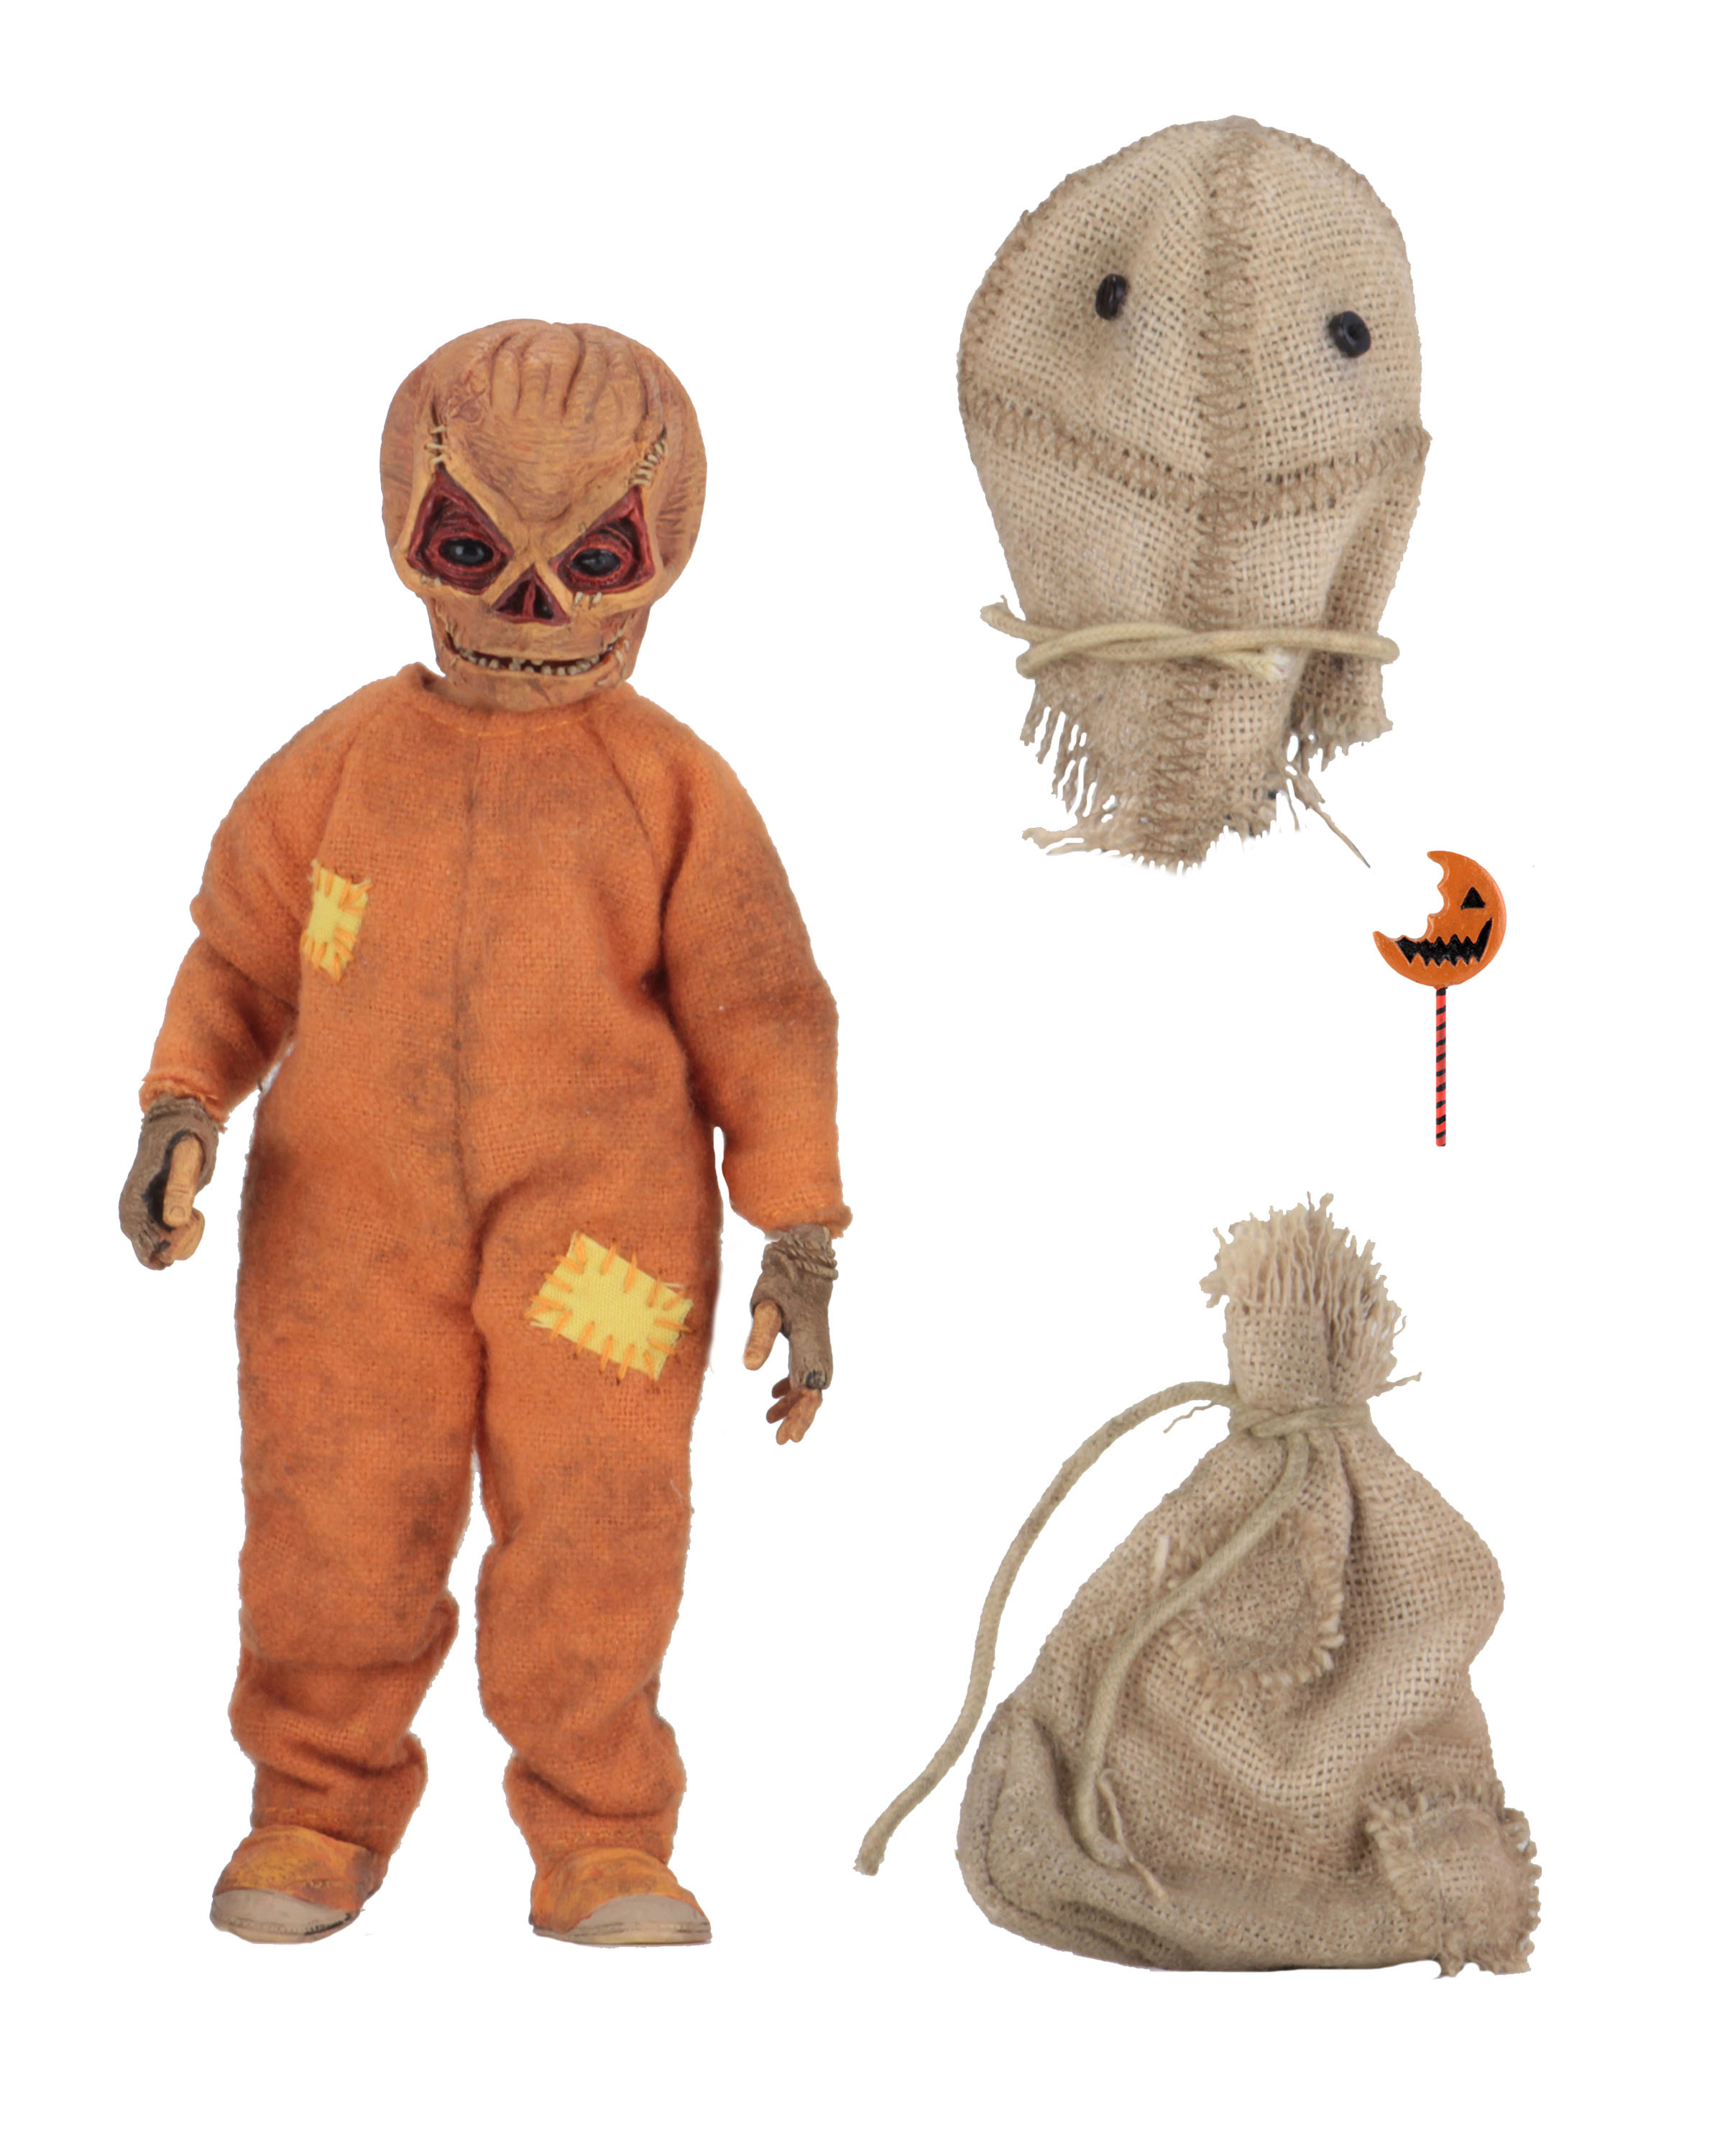 Sam Clothed Figure from Trick 'r Treat Available Now via ...